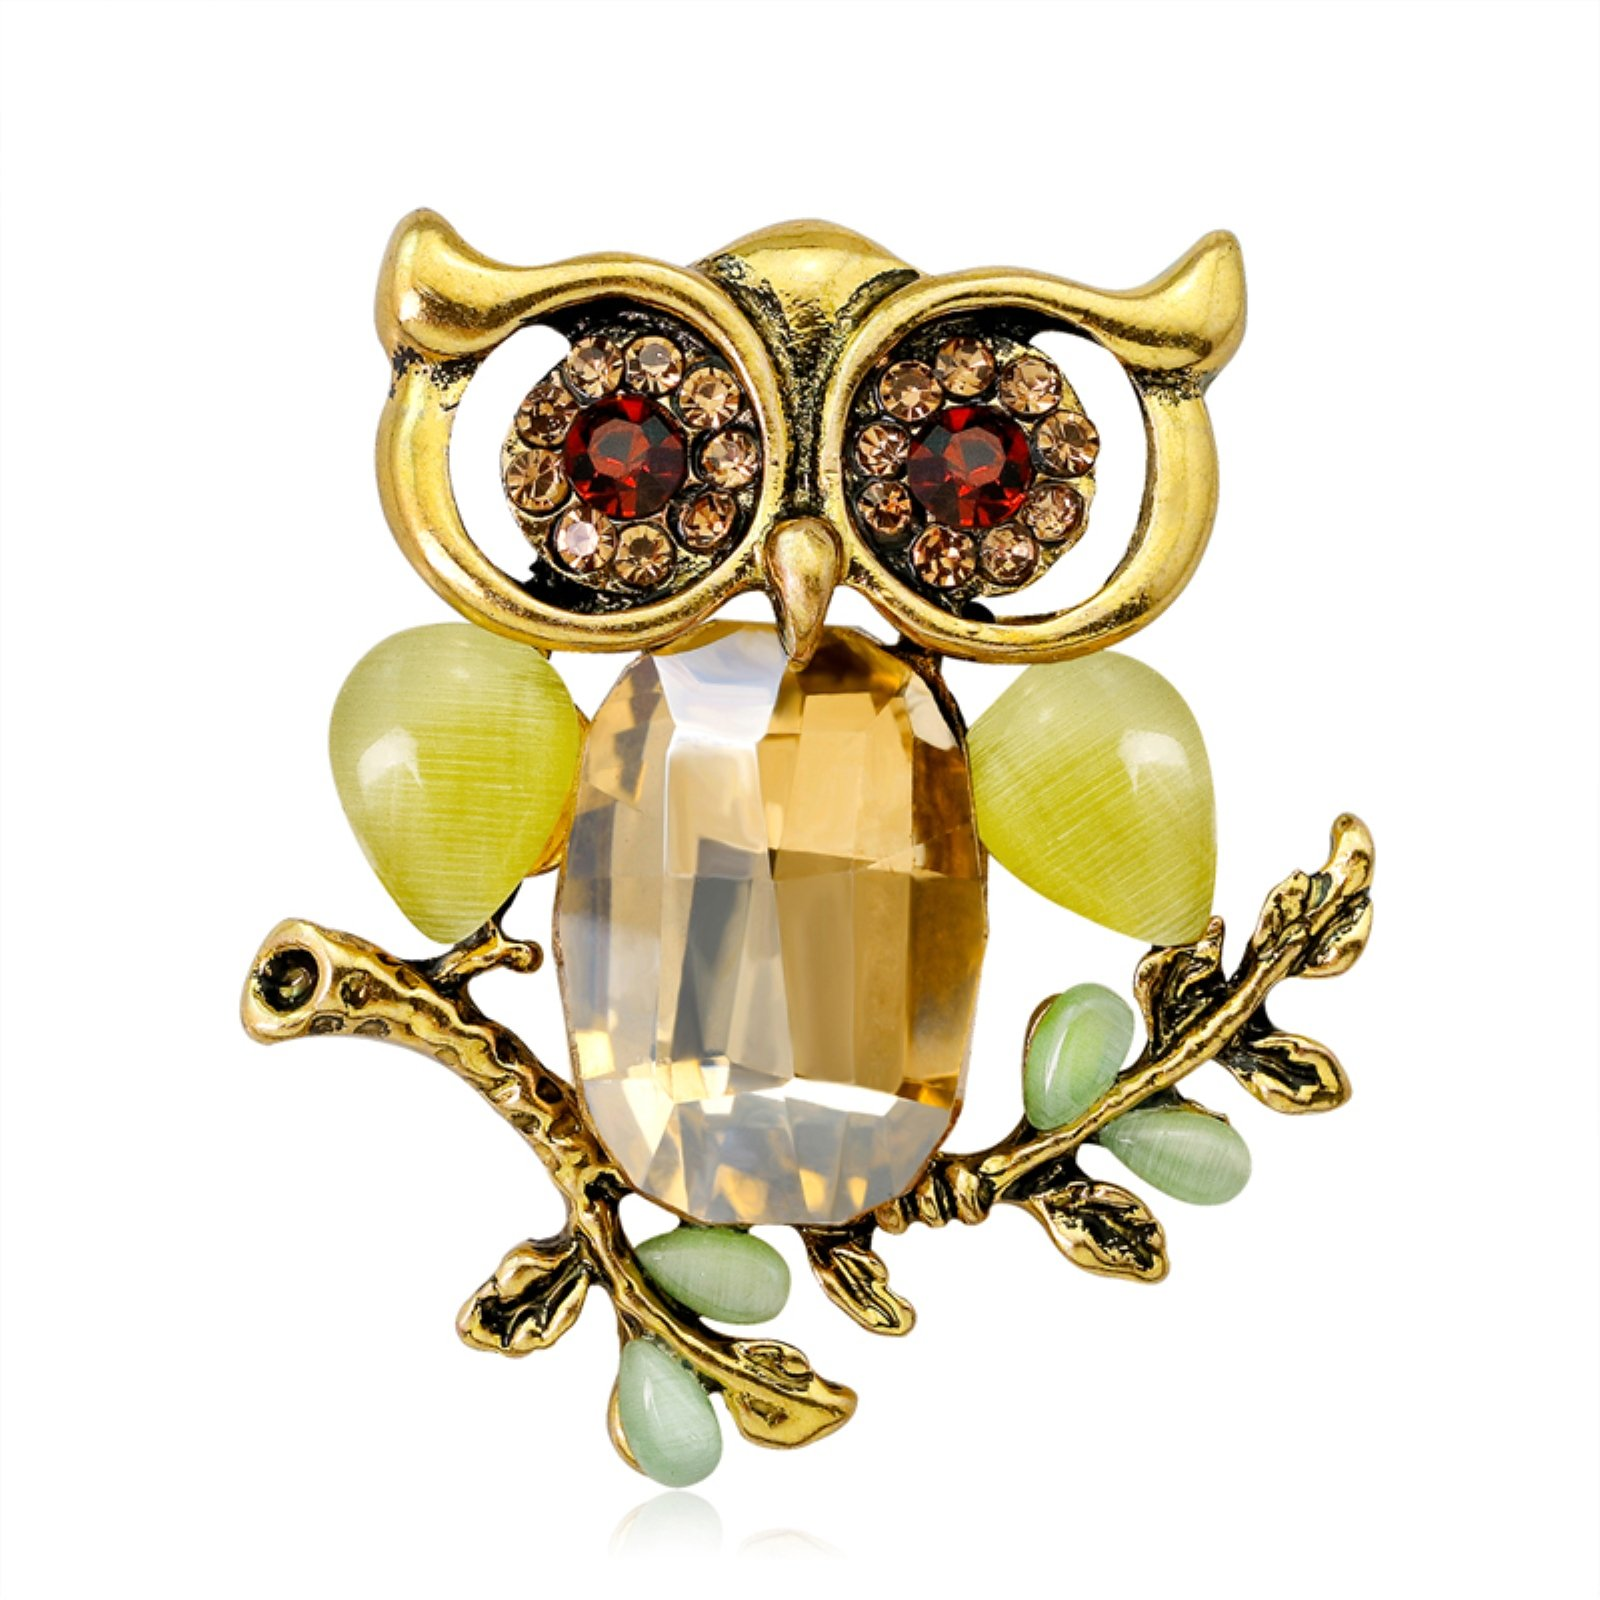 ptk12 Big Green Eyes Owl Brooch Pin Antique Colorful Animal Bird Brooches Pins Dress Accessories